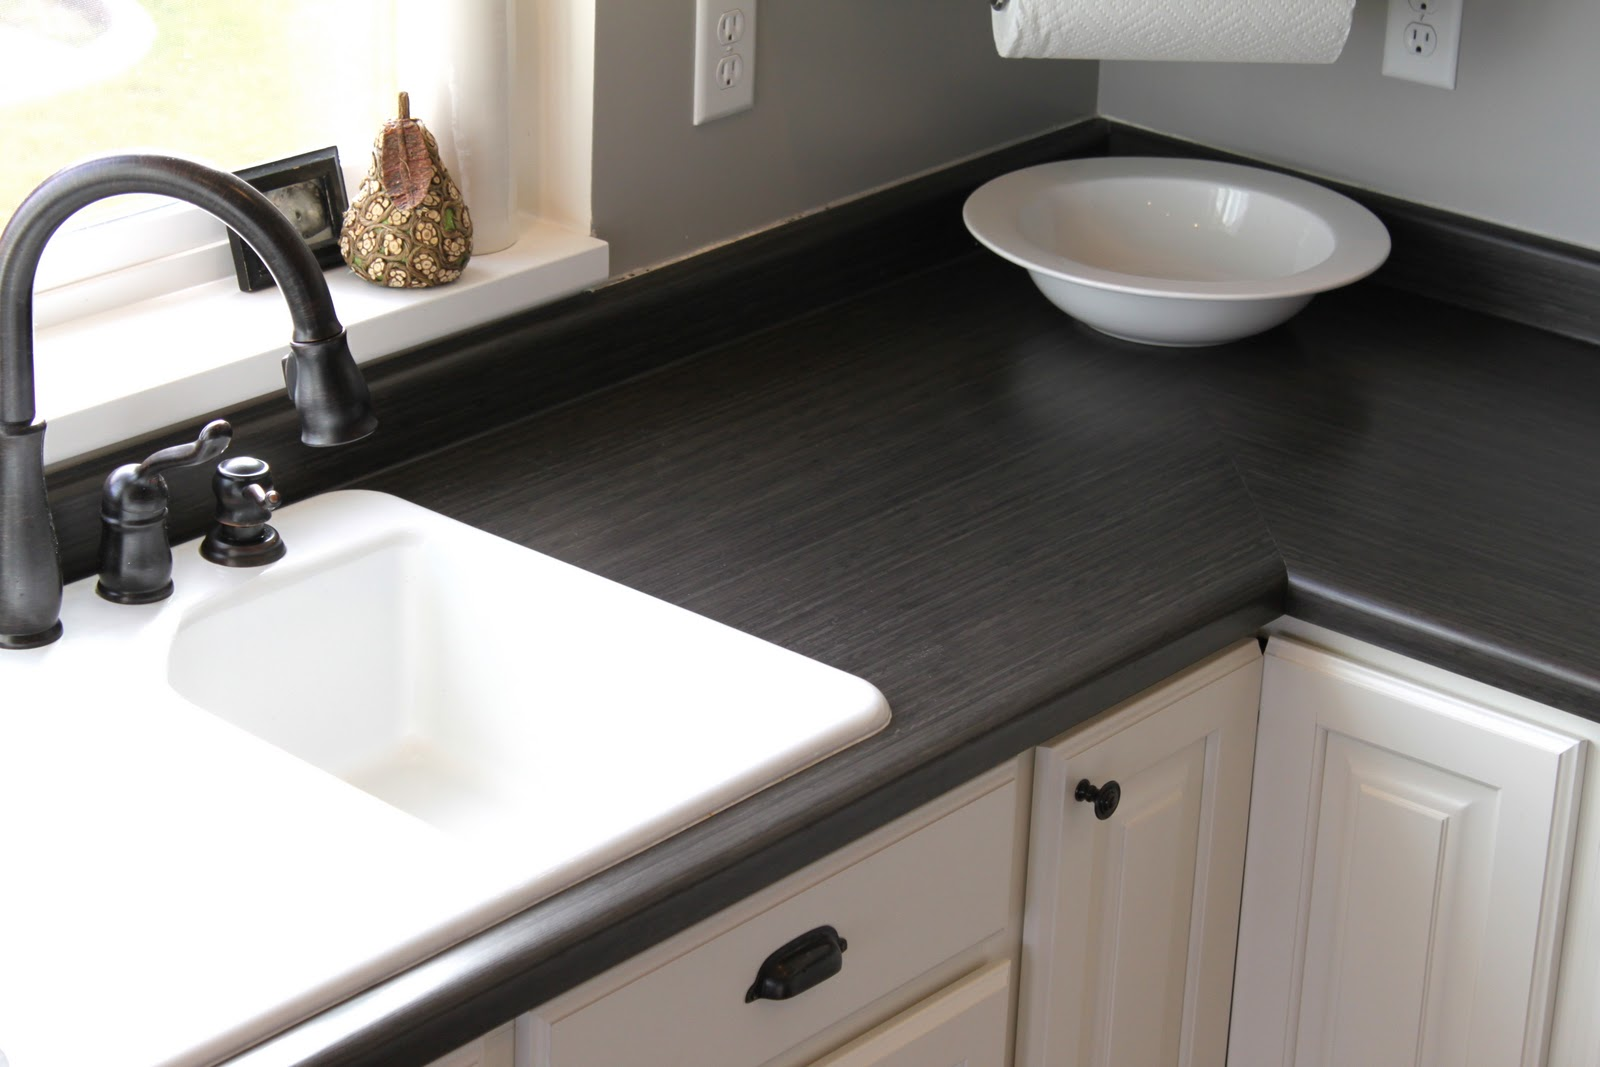 Reasonable Countertop Options : We had the builders build a drywall soffit above all the cabinetry, we ...